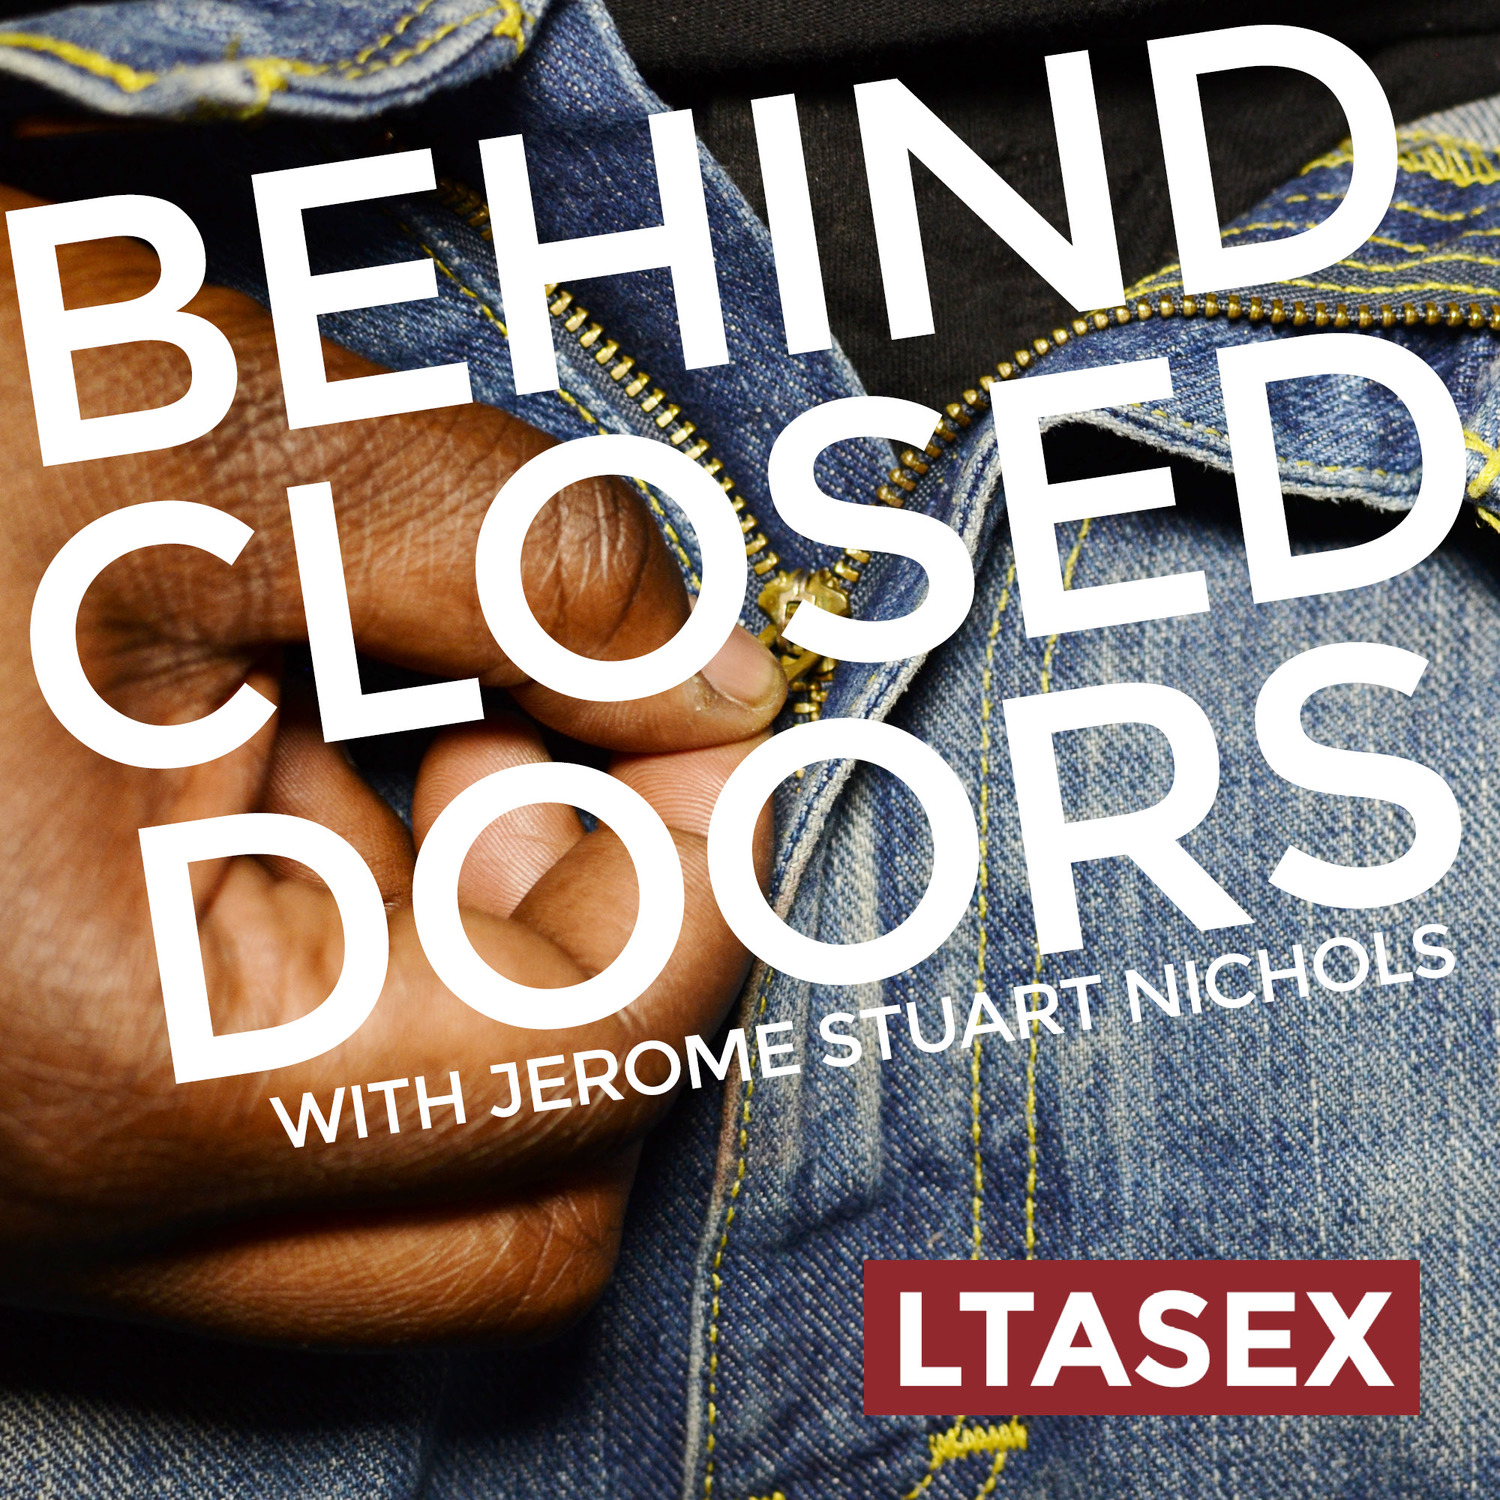 Behind Closed Doors Podcast - LTASEX